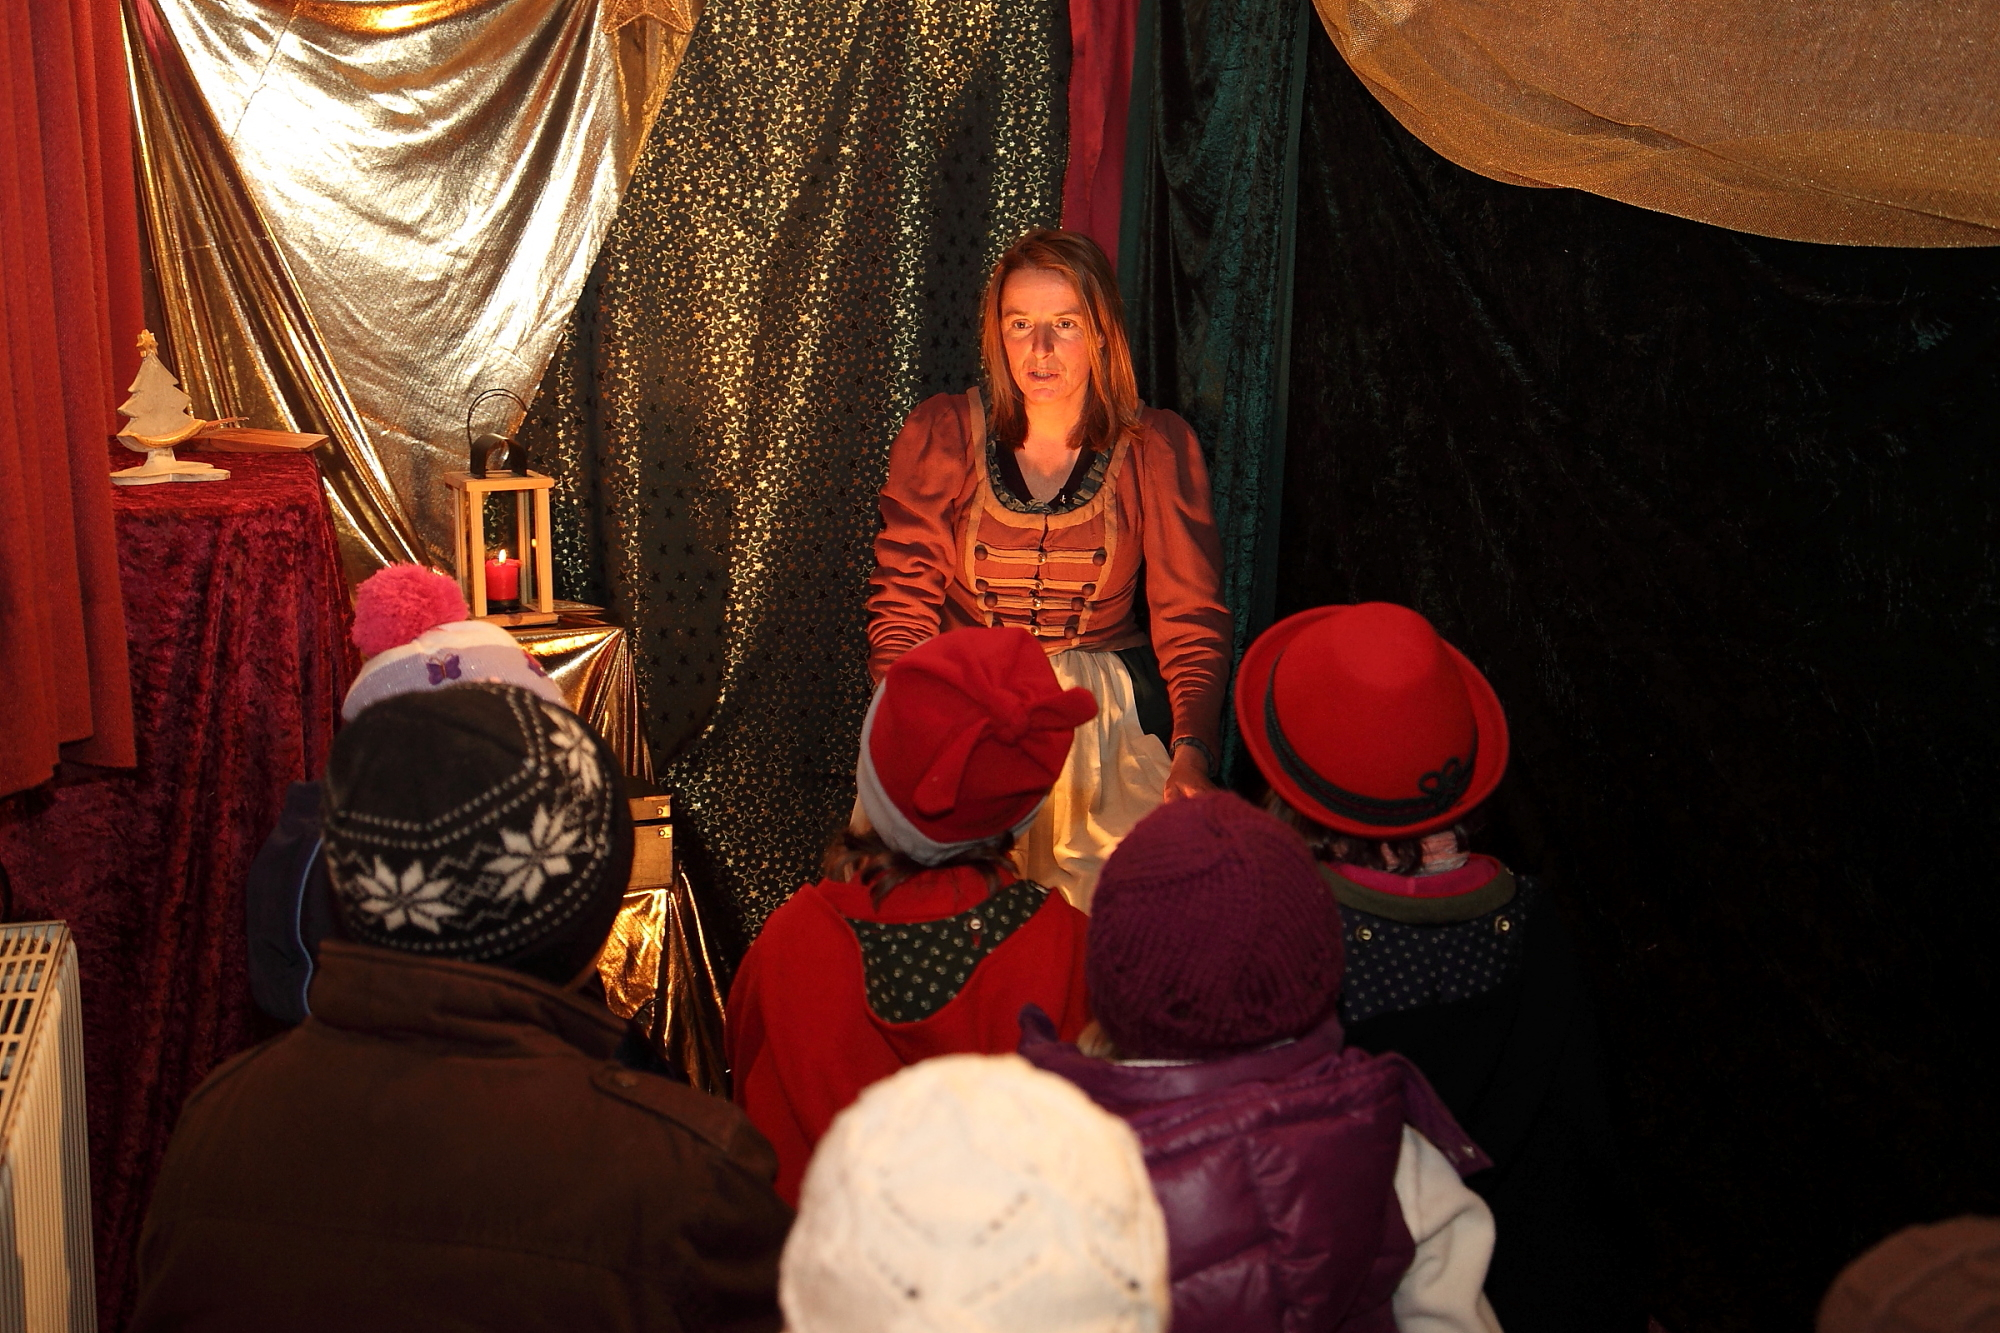 Fairy tales at the advent market in Gorssarl